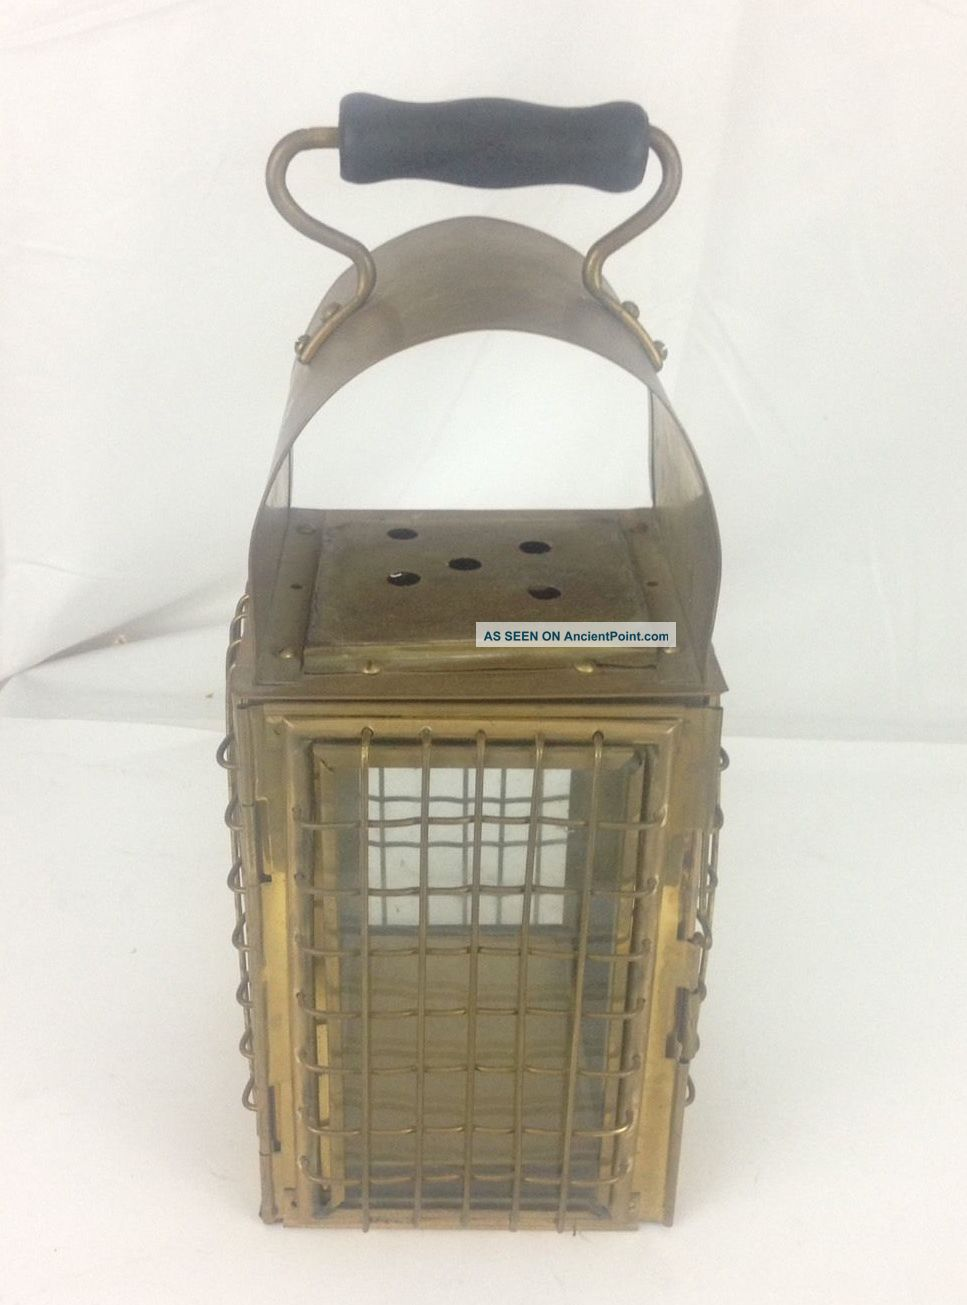 Vintage Brass Nautical Ship Lamp Lantern Grids Glass Panels Wooden Handle Lamps & Lighting photo